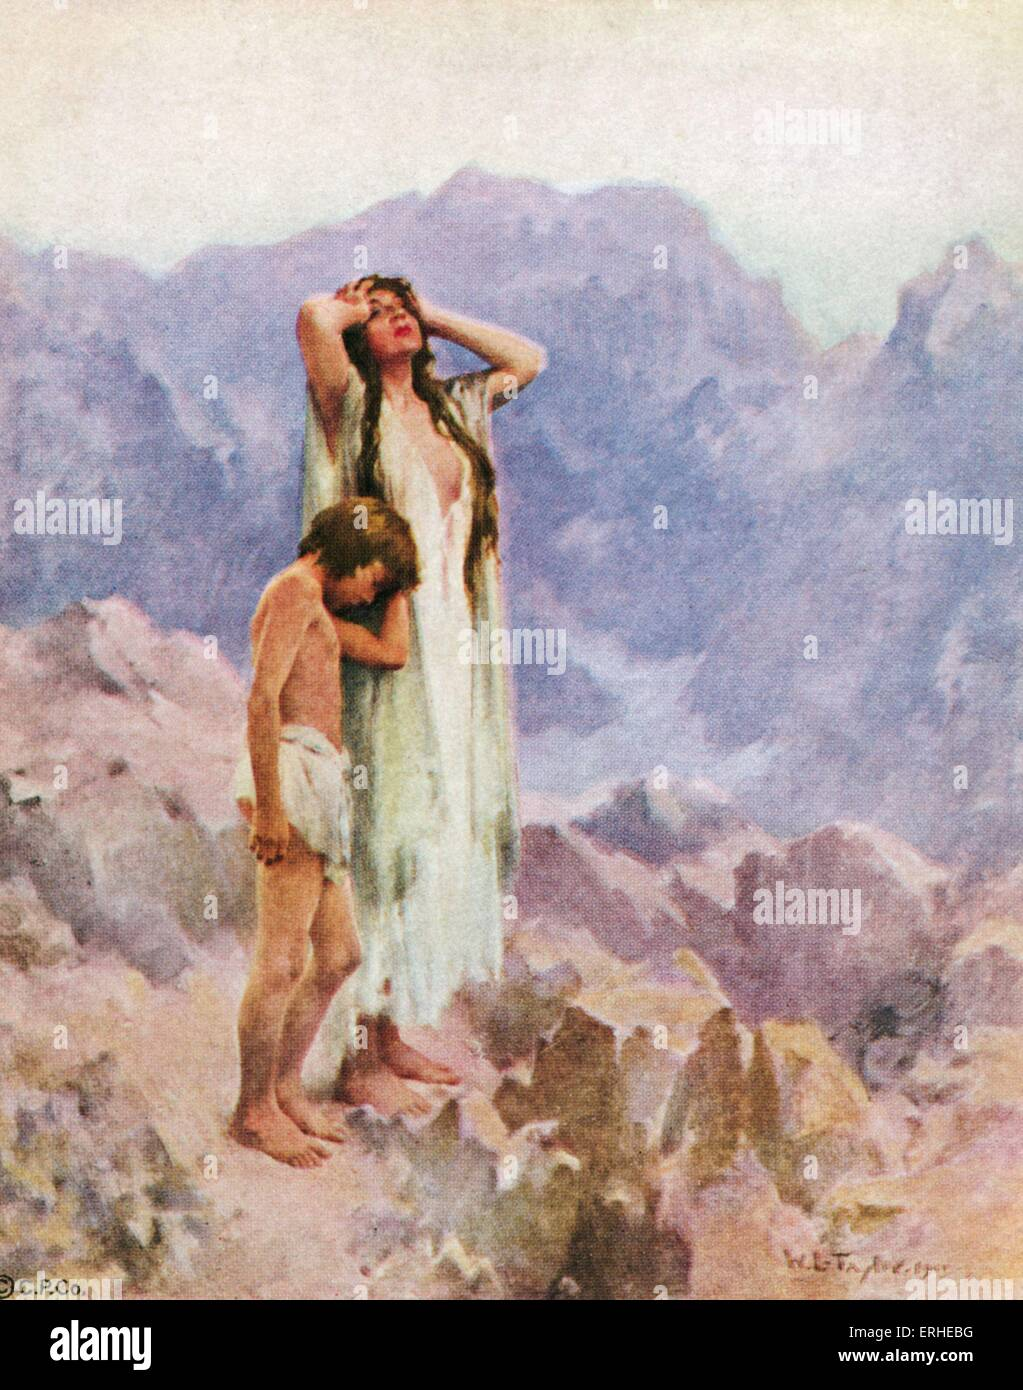 Hagar and Ishmael in the wilderness, cast out by Abraham and Sarah.  Illustration of Sarah's handmaid Hagar with her son Ishmael, son of  Abraham, ...